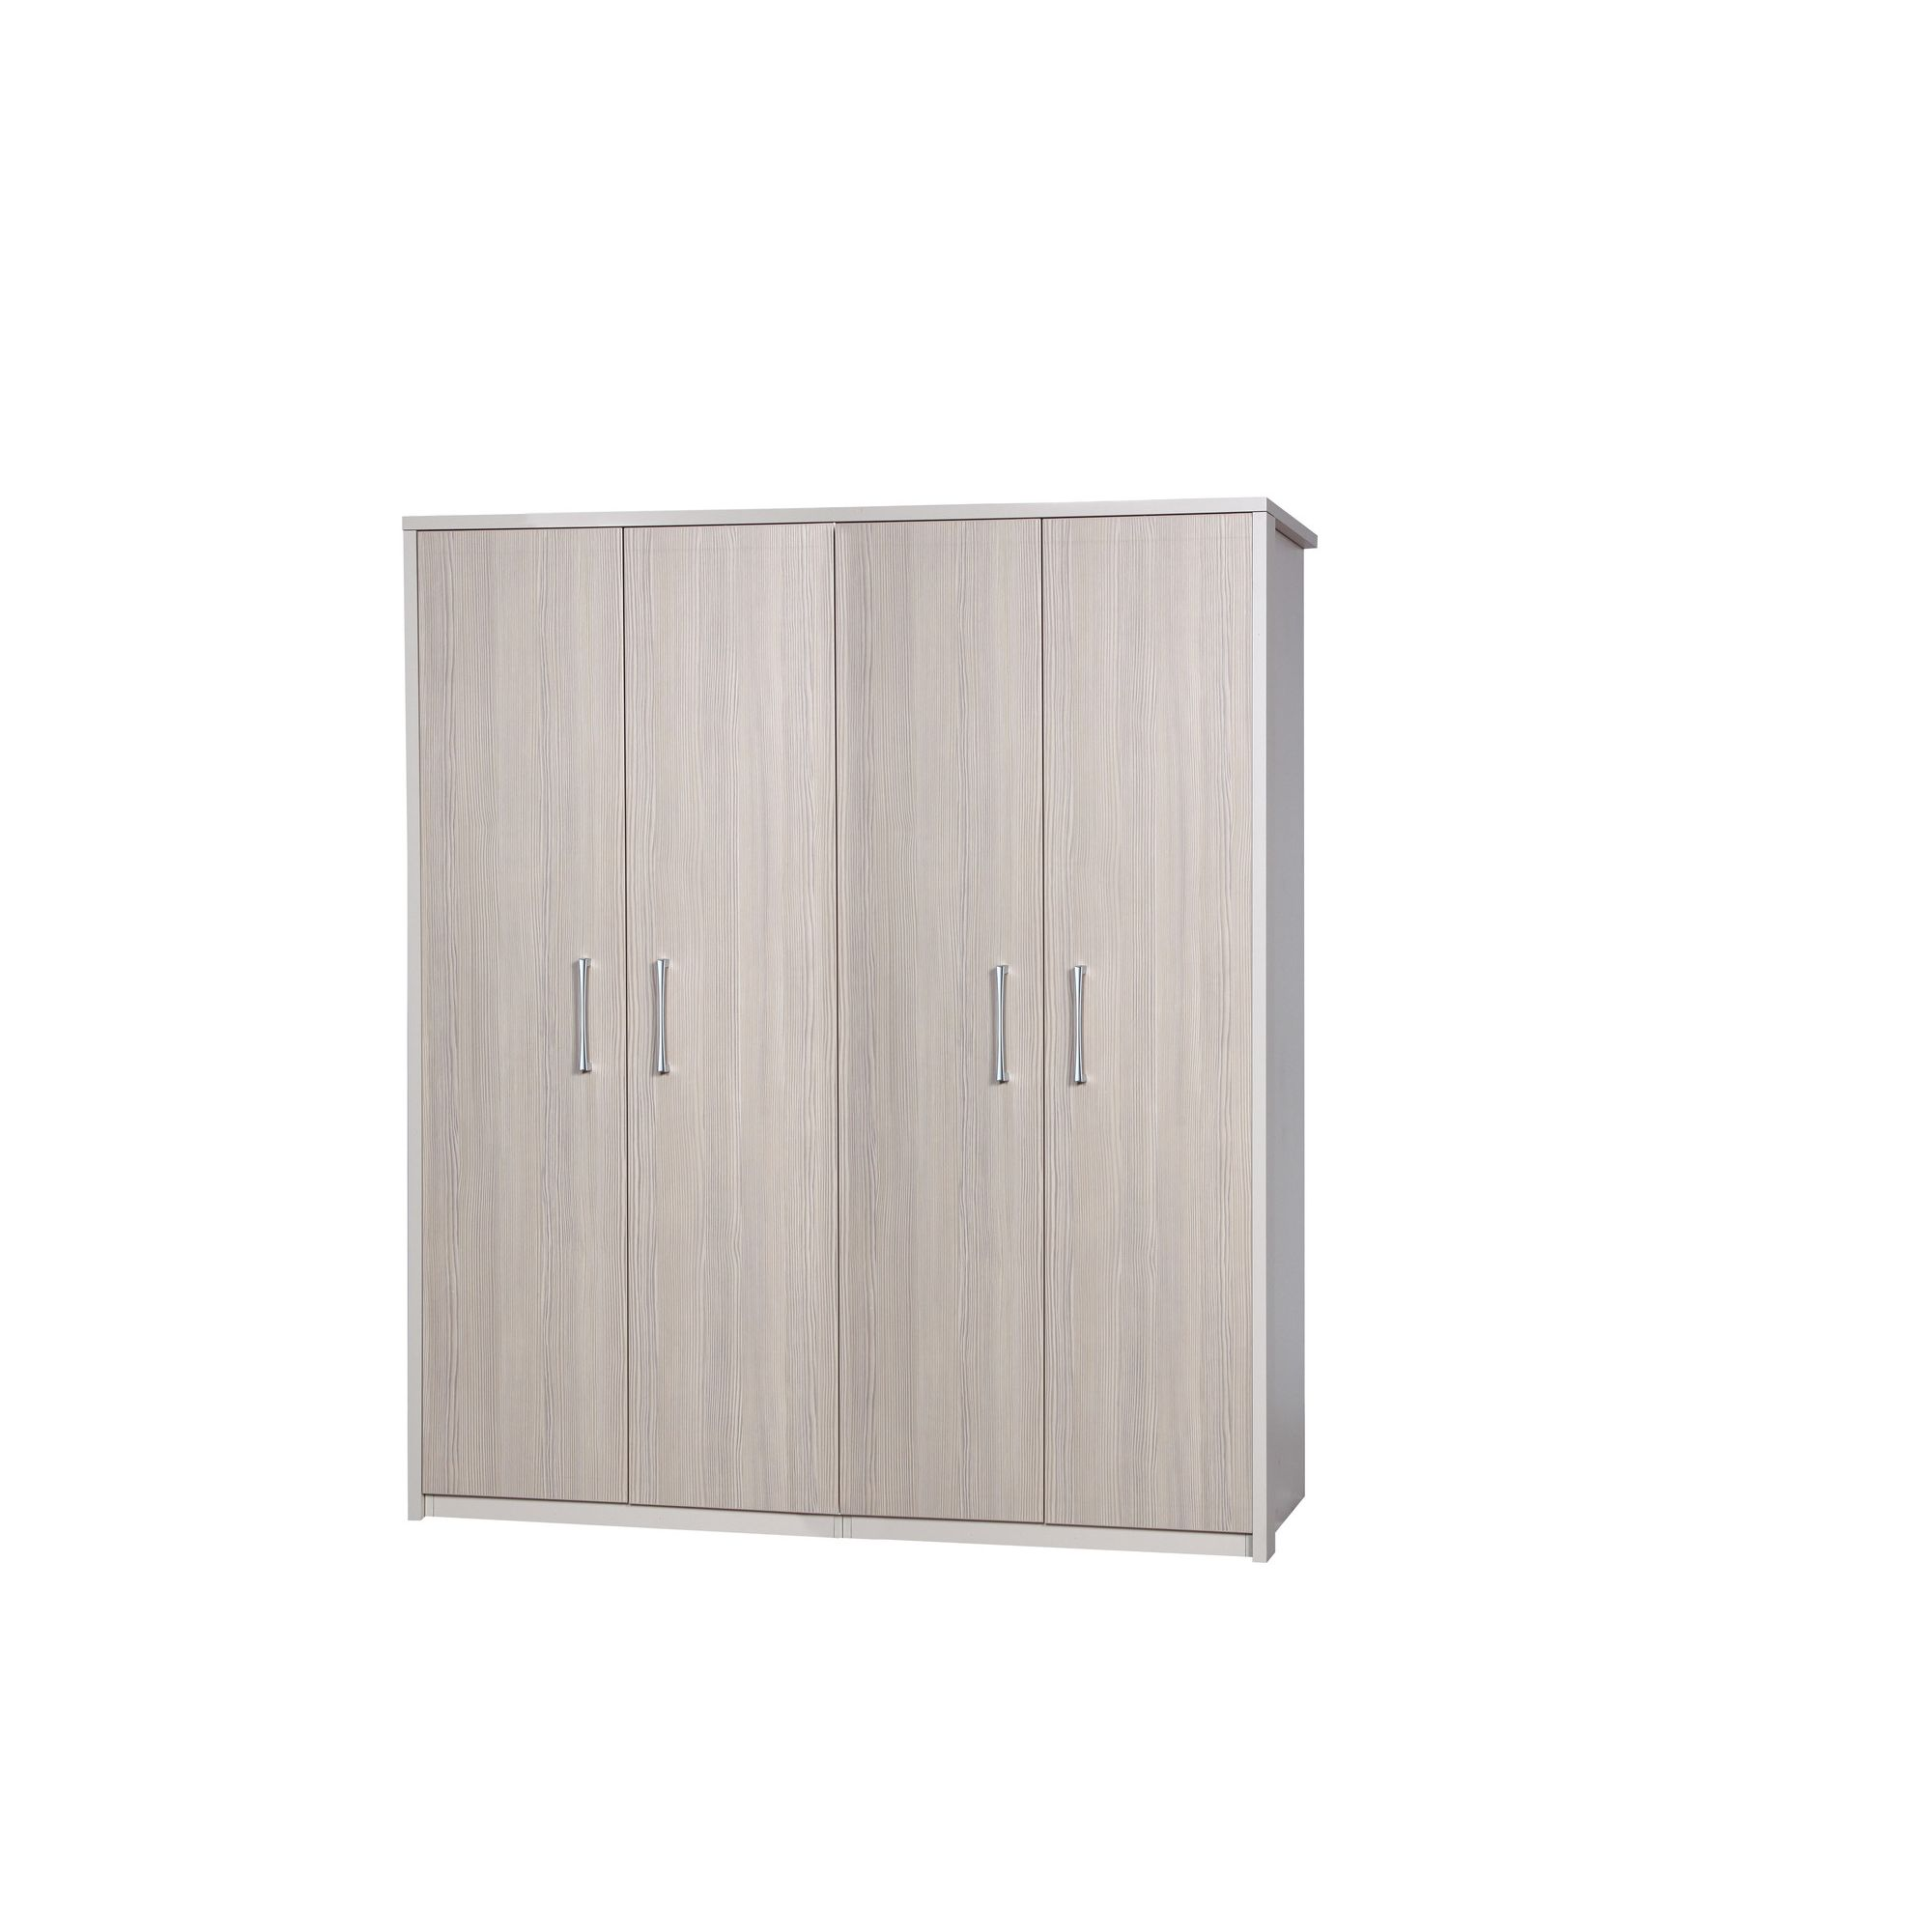 Alto Furniture Avola 4 Door Wardrobe - Cream Carcass With Champagne Avola at Tescos Direct